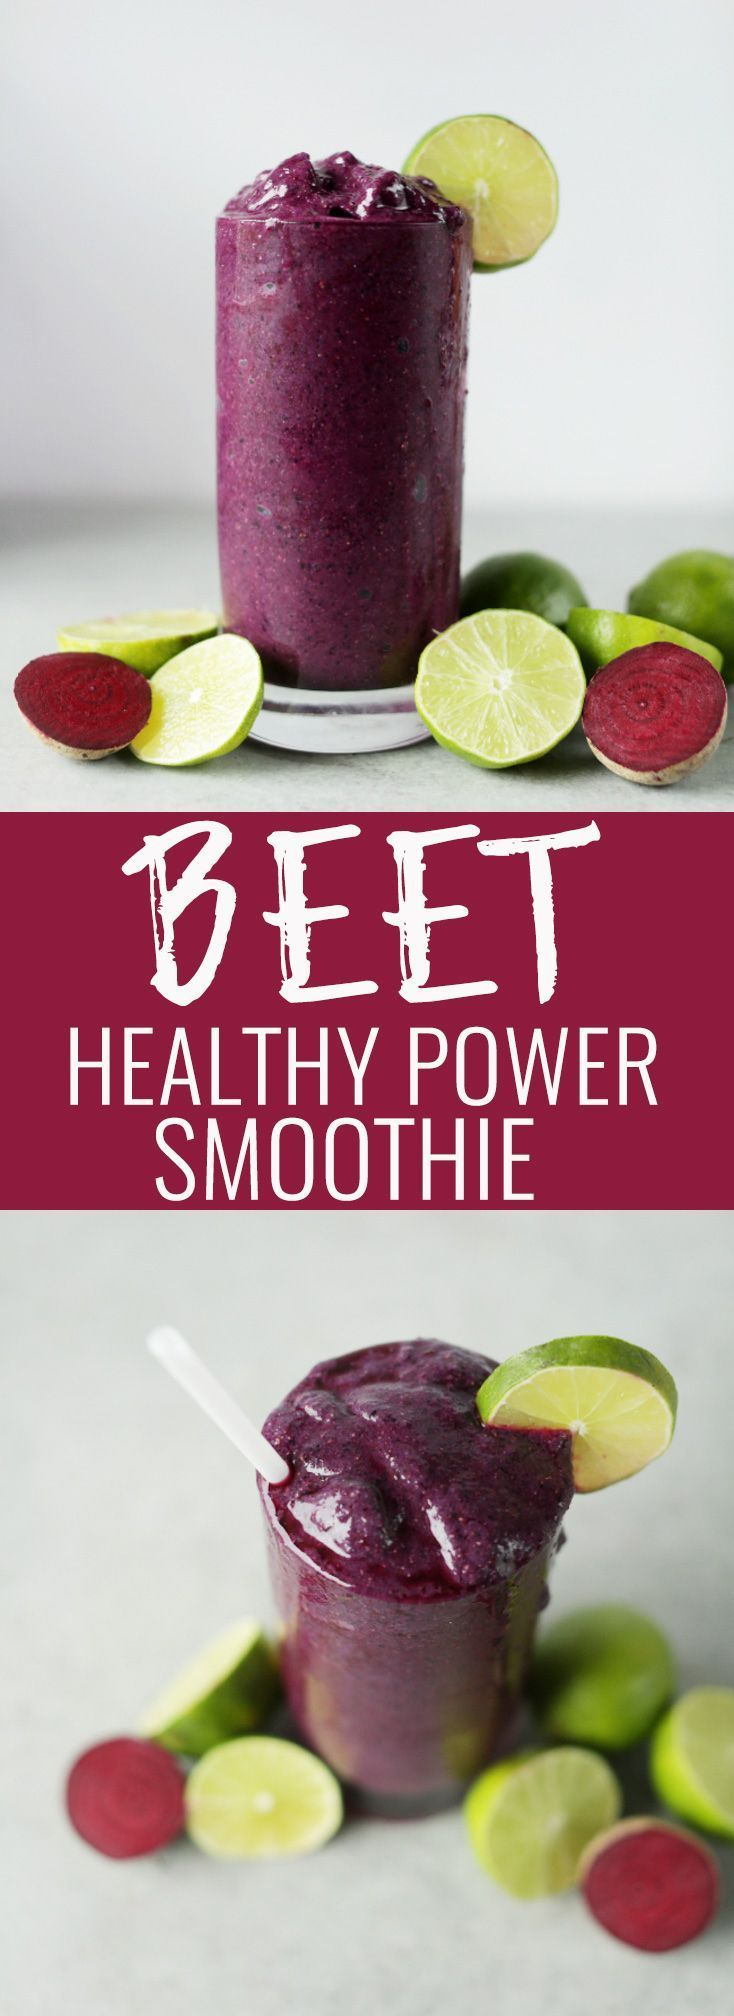 Beet the cold power smoothie filled with beets, blueberries, lime juice and chia seeds. The perfect healthy & refreshing detox smoothie. http://Nutritionalfoodie.com